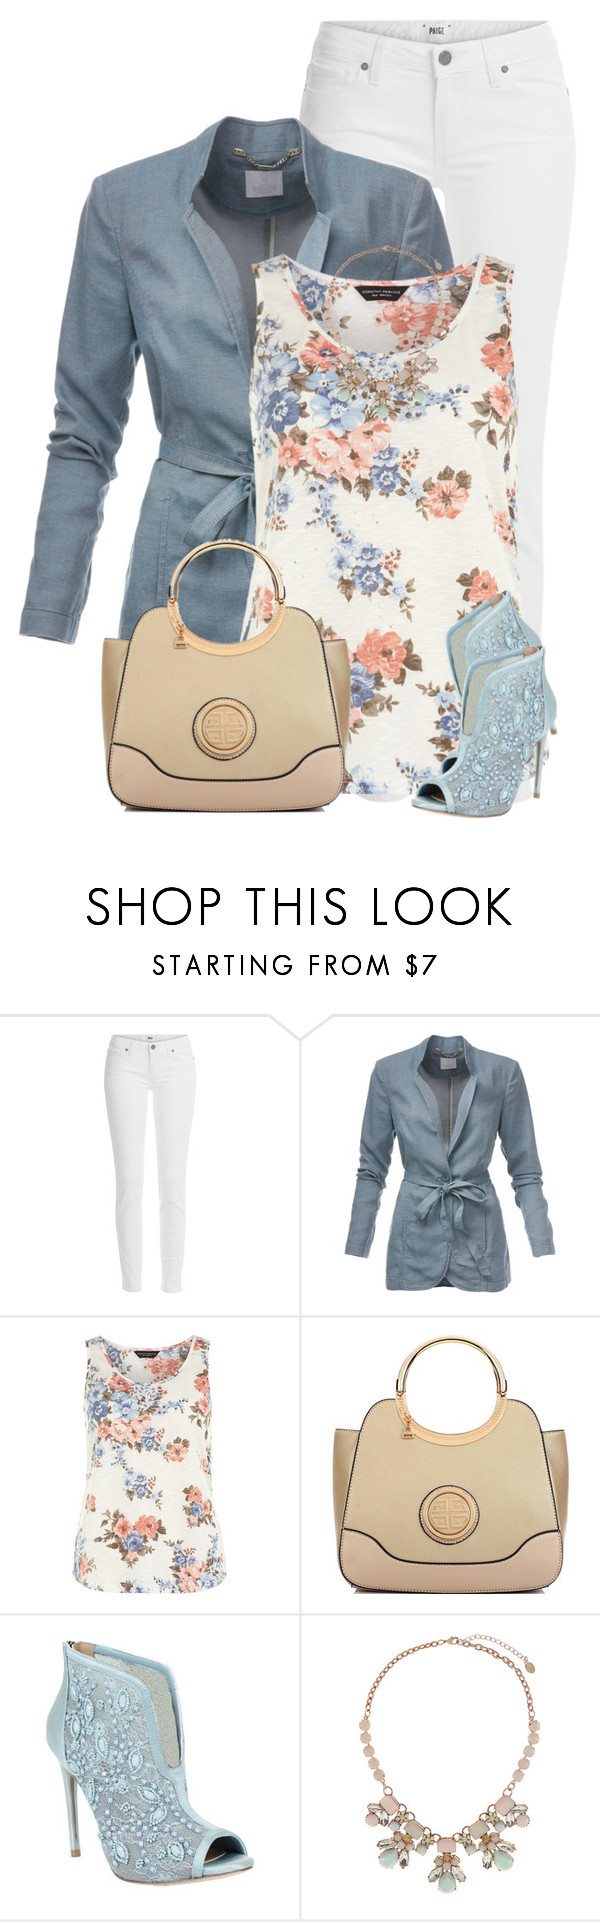 """Light Blue Ankle Booties"" by daiscat ❤ liked on Polyvore featuring Paige Denim, Dorothy Perkins, Dasein, BCBGMAXAZRIA and Accessorize"